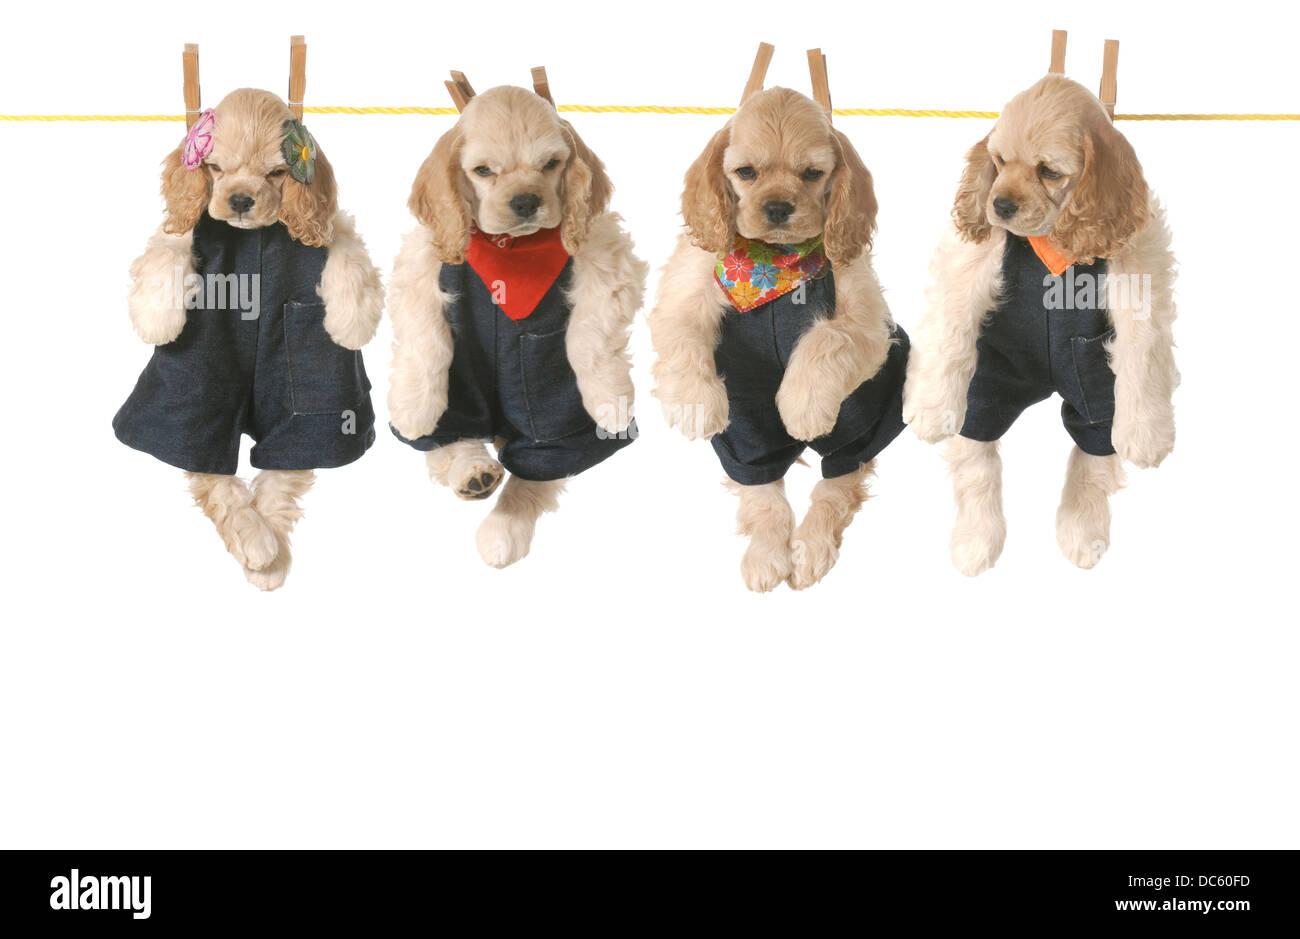 litter of puppies - four american cocker spaniel puppies hanging on a clothesline - 7 weeks old - Stock Image